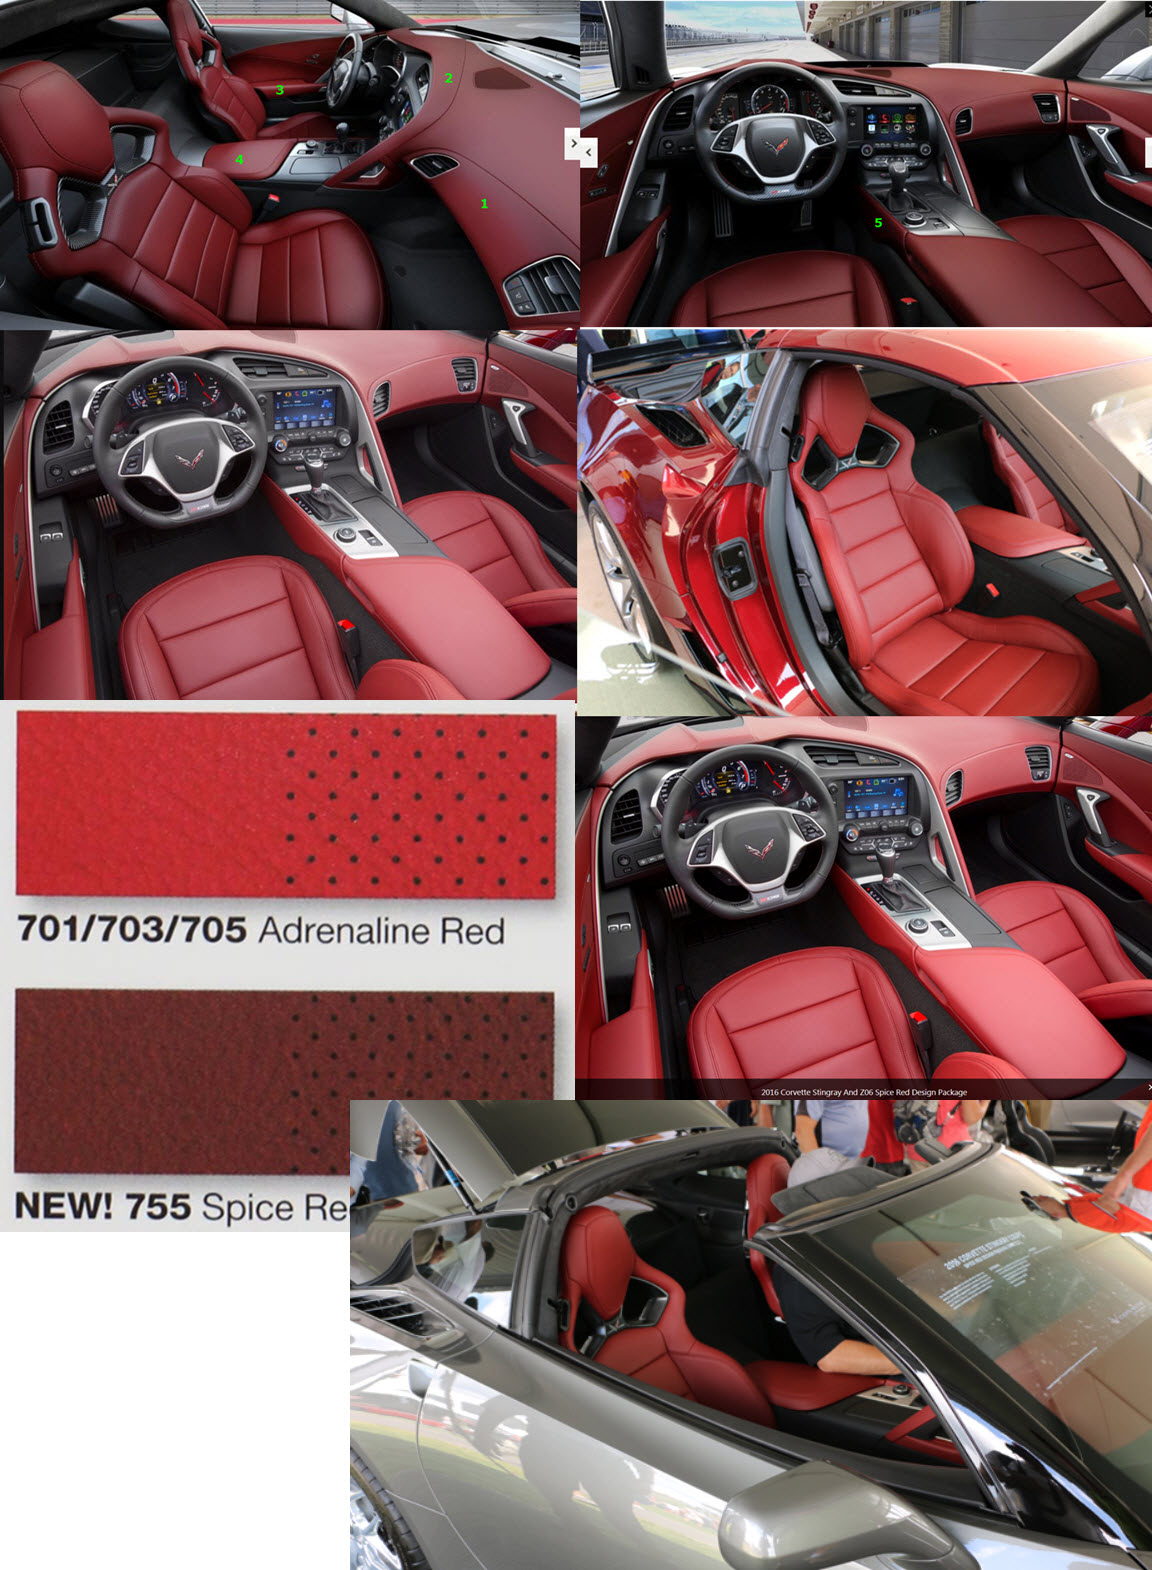 name spice red interiorjpg views 2147 size 3655 kb - 2016 Corvette Stingray And Z06 Spice Red Design Package